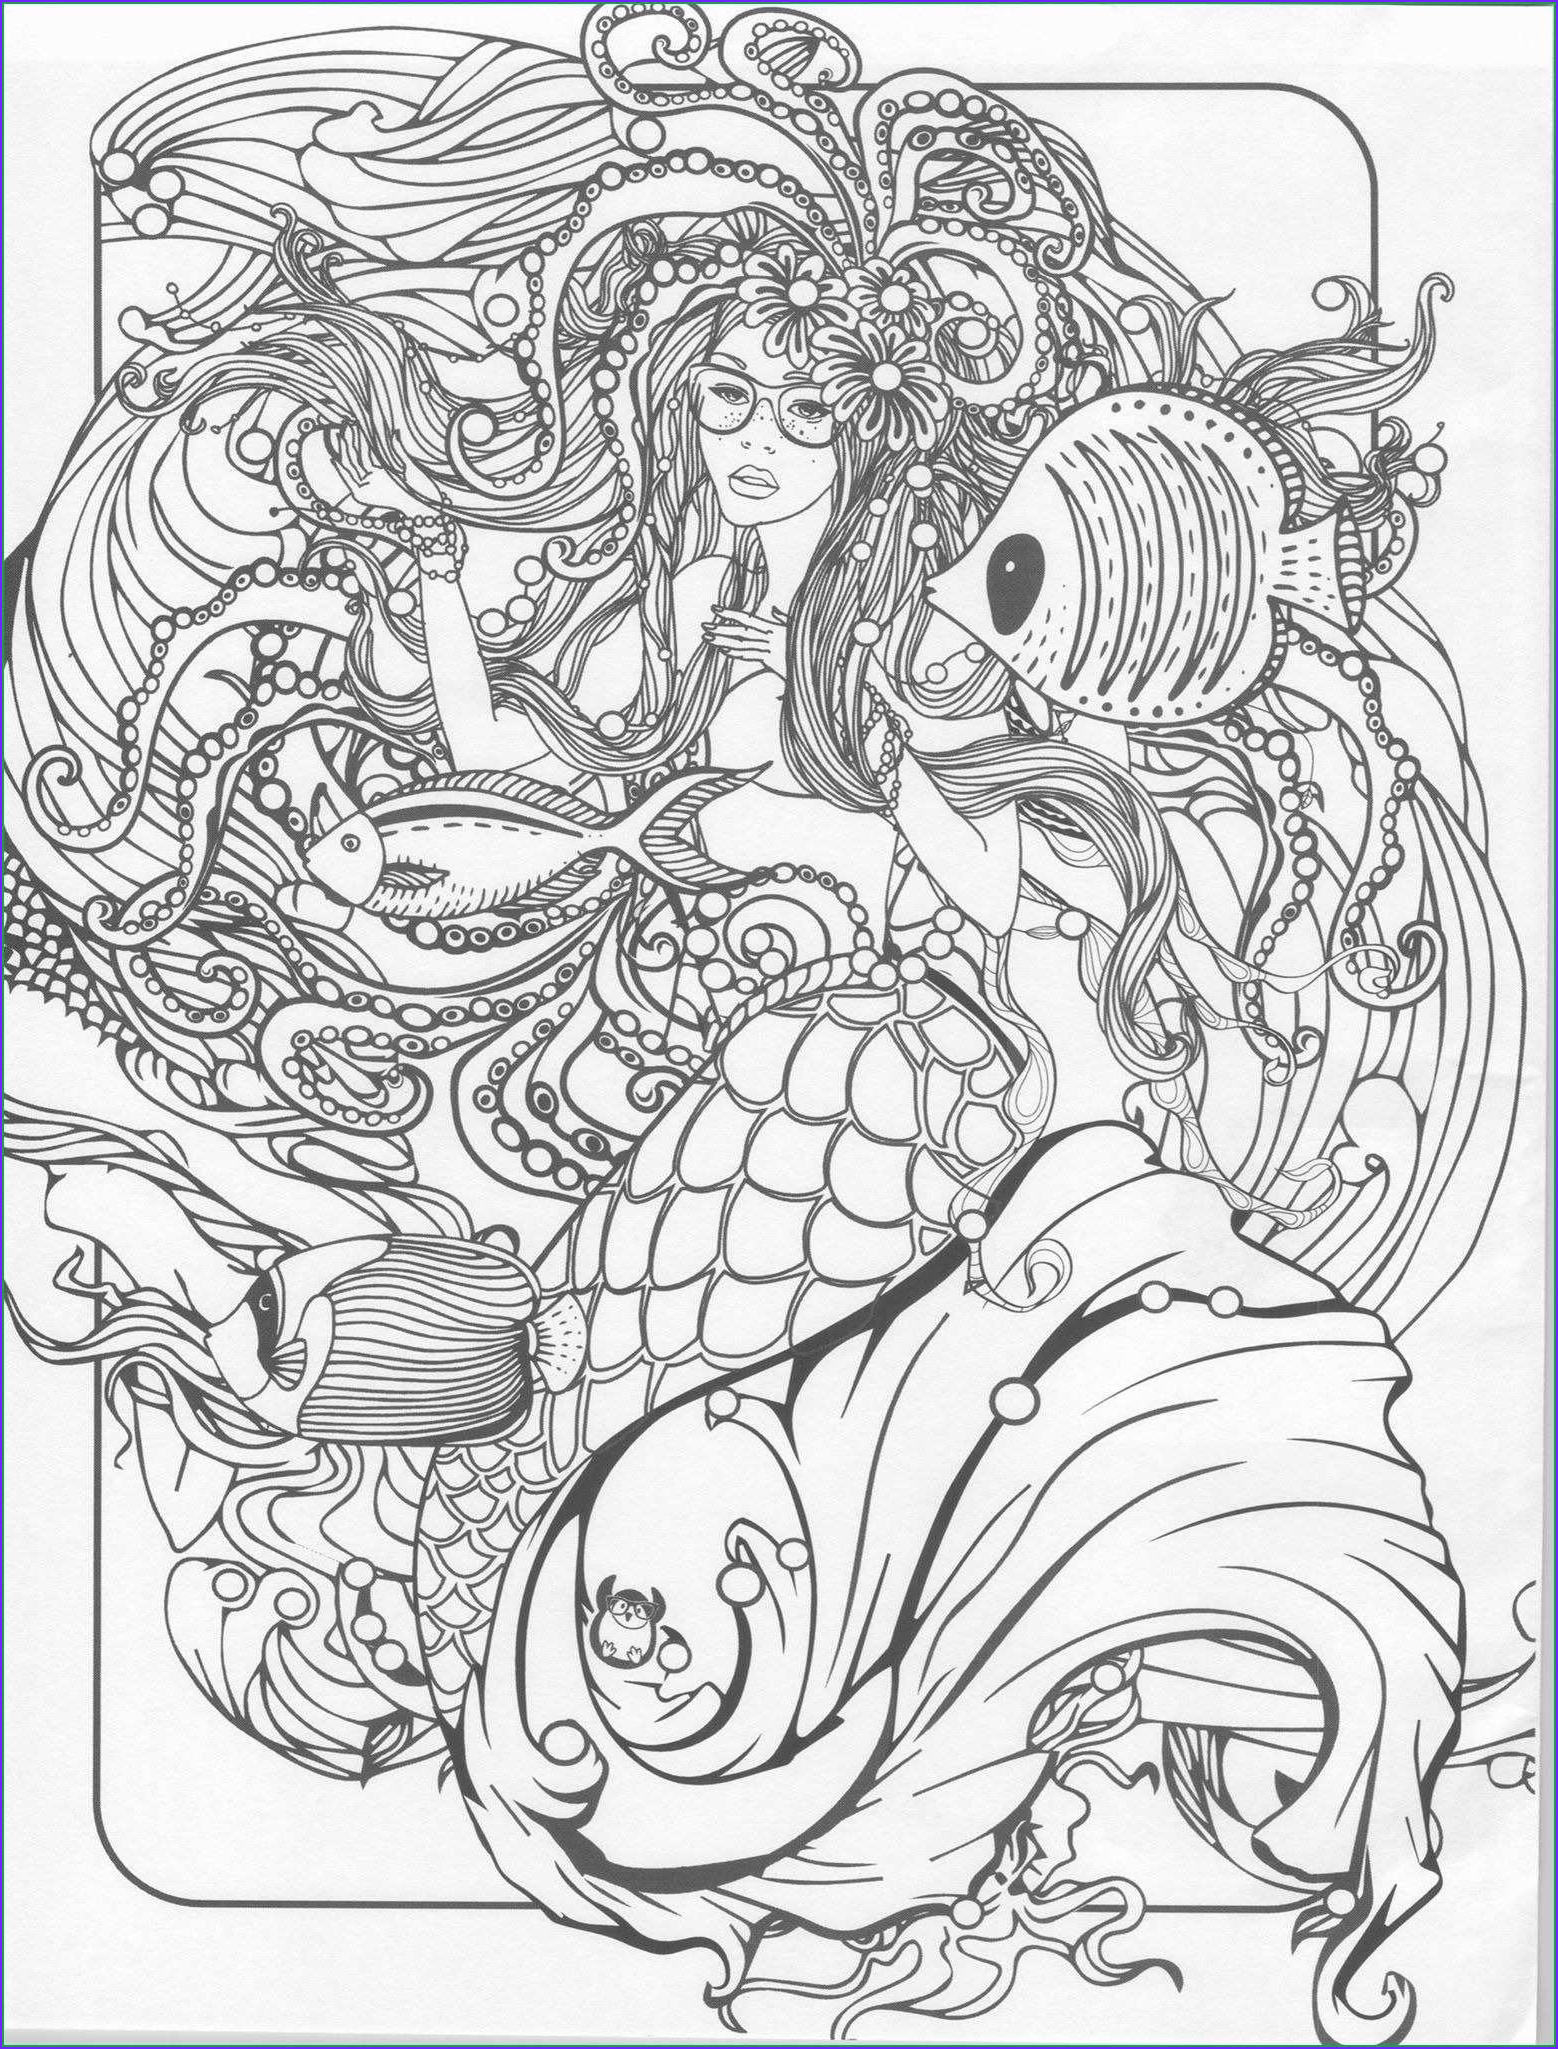 Mythical Mermaids Coloring Book Unique Gallery Mermaids Coloring Book